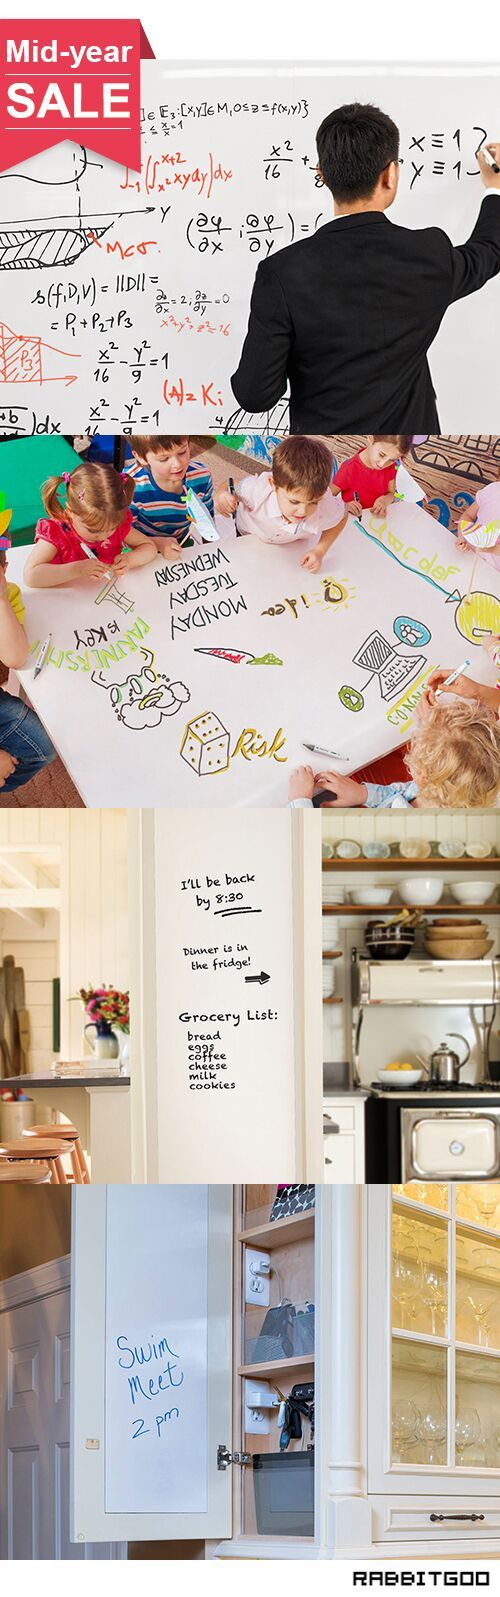 @rabbitgooing Rabbitgoo Self-Adhesive Wall Sticker Wall Paper Whiteboard Sticker Chalkboard Contact Paper (White) 17.7 by 78.7 Inches with 1 Marker Pen for School/ Office/ Home (for Water-based Marker Pen)